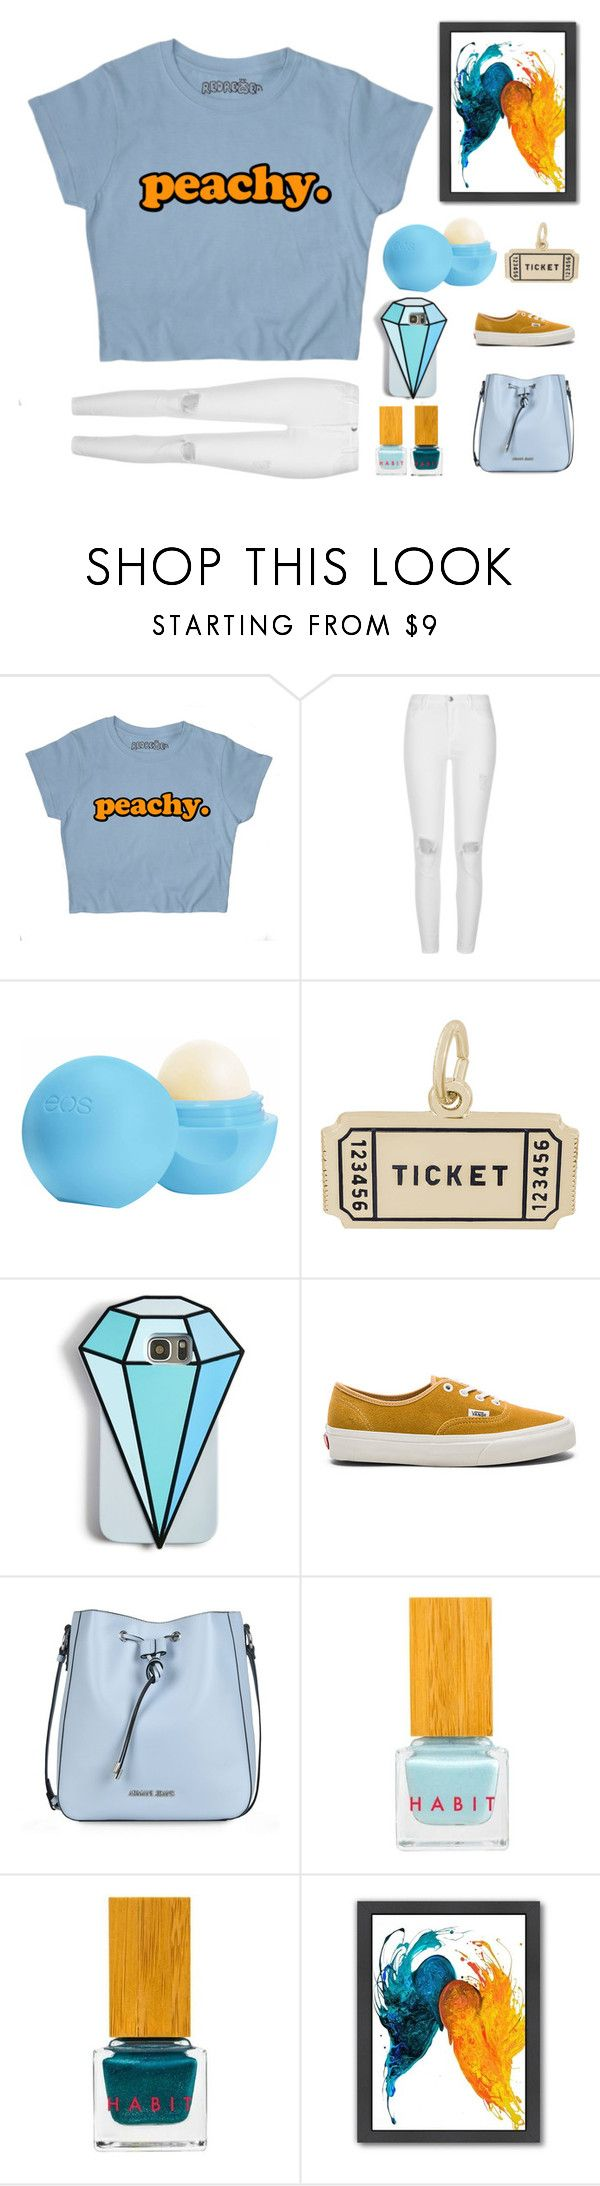 """""""Peachy"""" by jesikasul ❤ liked on Polyvore featuring River Island, Eos, Rembrandt Charms, Celebrate Shop, Vans, Armani Jeans, Habit Cosmetics and Americanflat"""